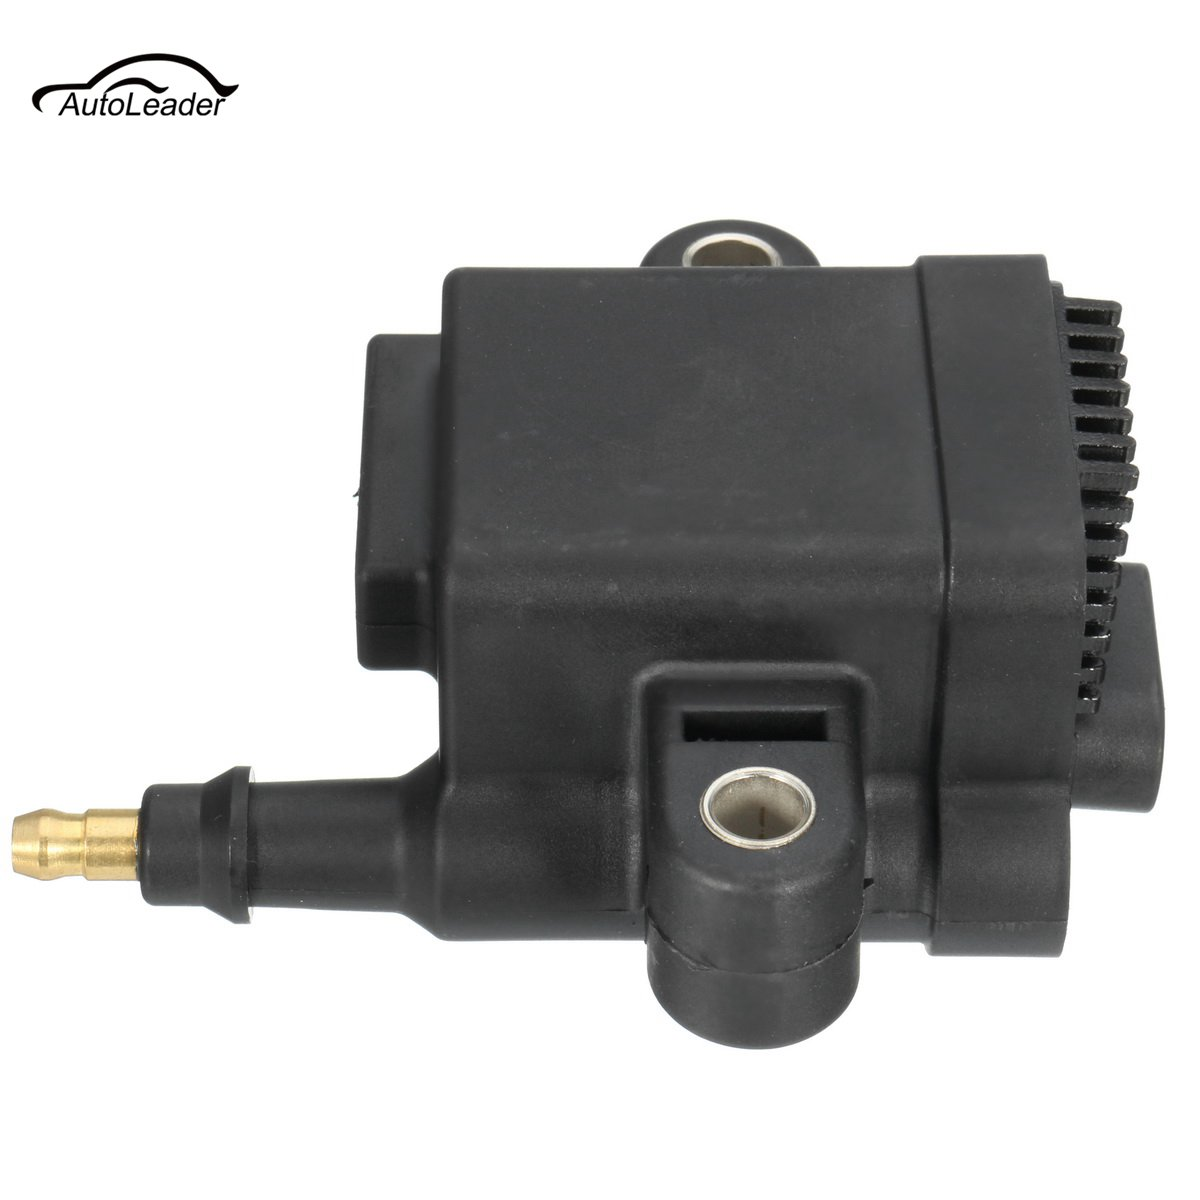 US $22 55 6% OFF|5 Pins Connector Ignition Coil For Mercury Optimax Pro XS  Racing EFI 300 879984T01 300 8M0077471 339 879984A1 339 879984T00-in